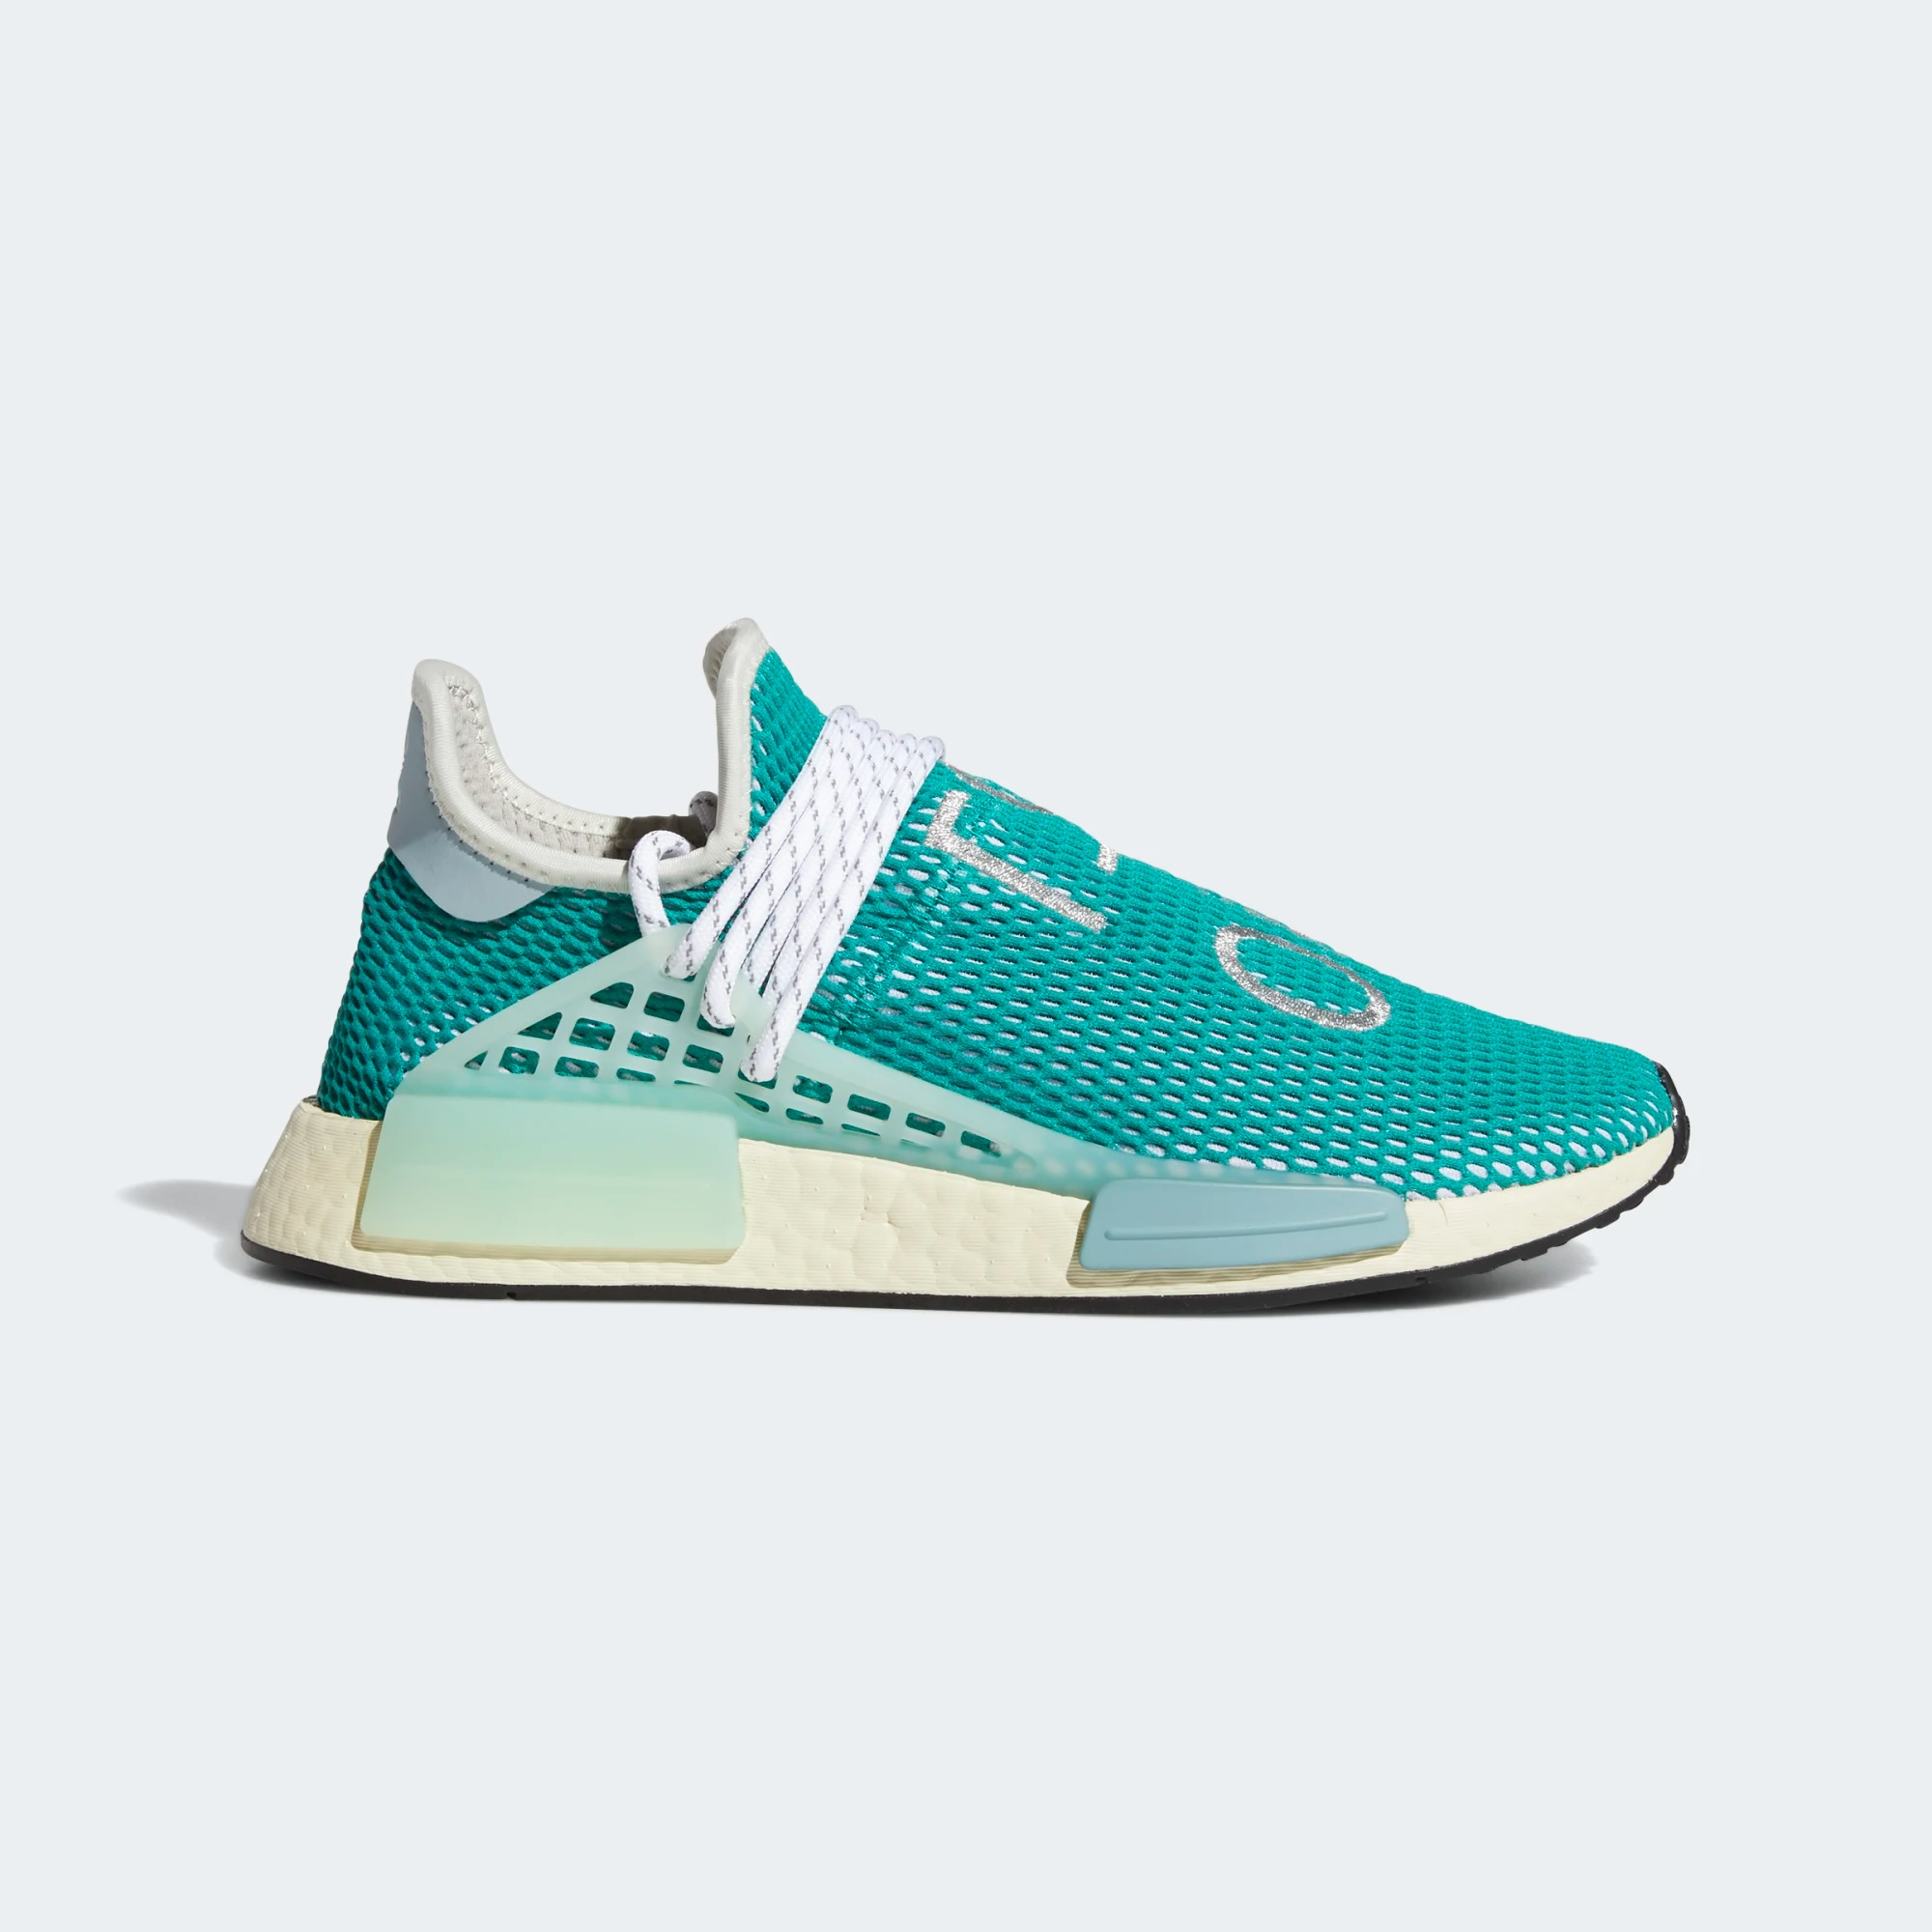 Pharrell  Williams x adidas Originals NMD HU 'Dash Green'}